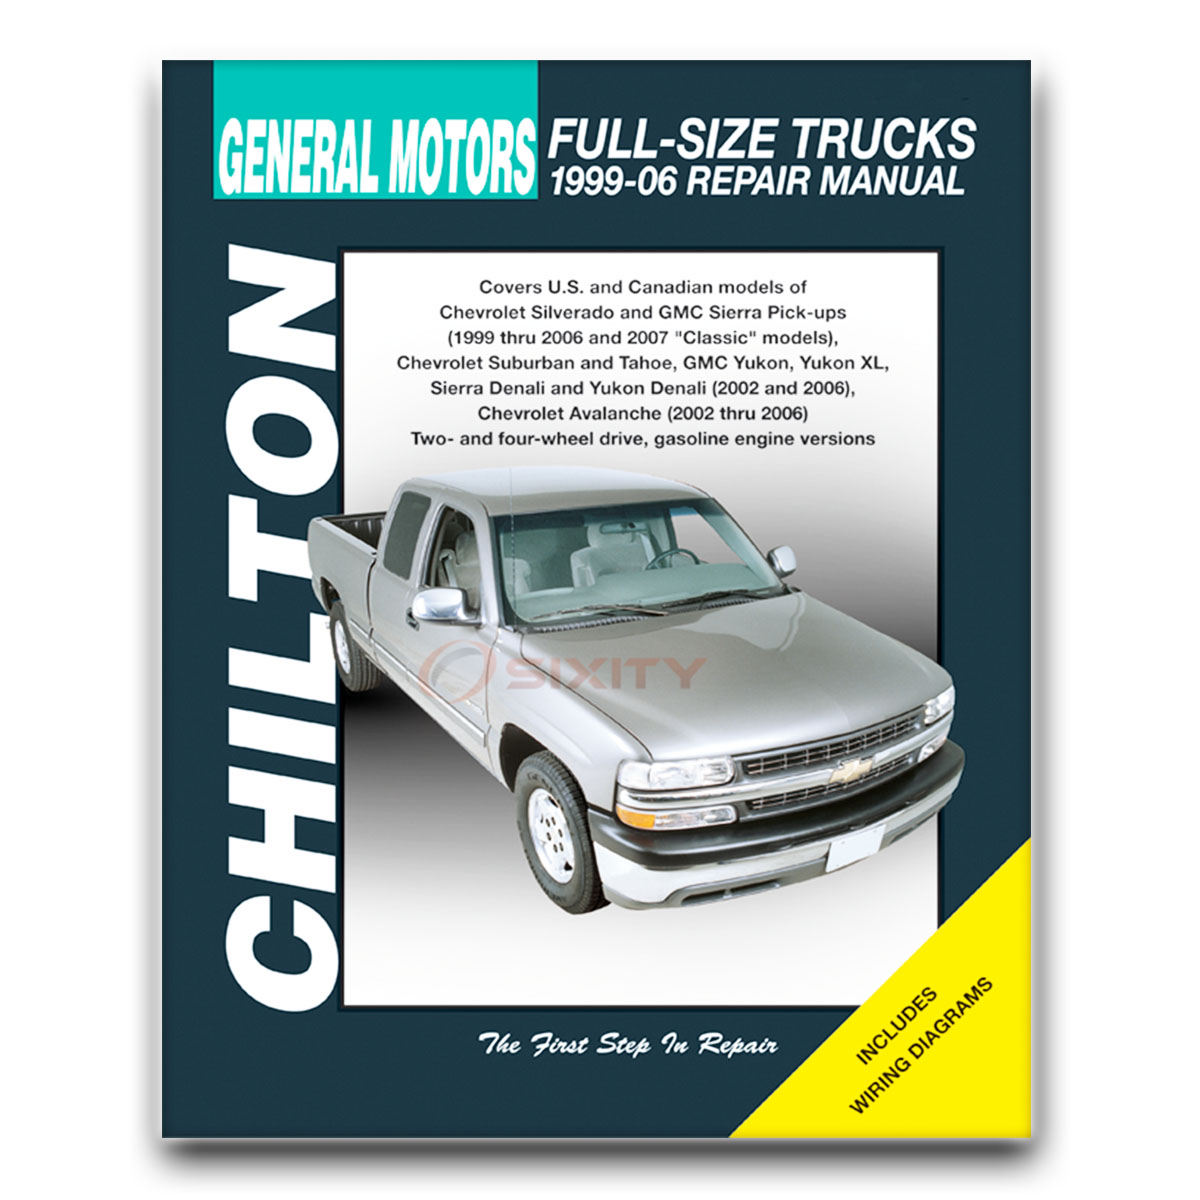 2000 gmc yukon service manual open source user manual u2022 rh dramatic varieties com 2004 gmc sierra 2500hd service manual 04 GMC 1500